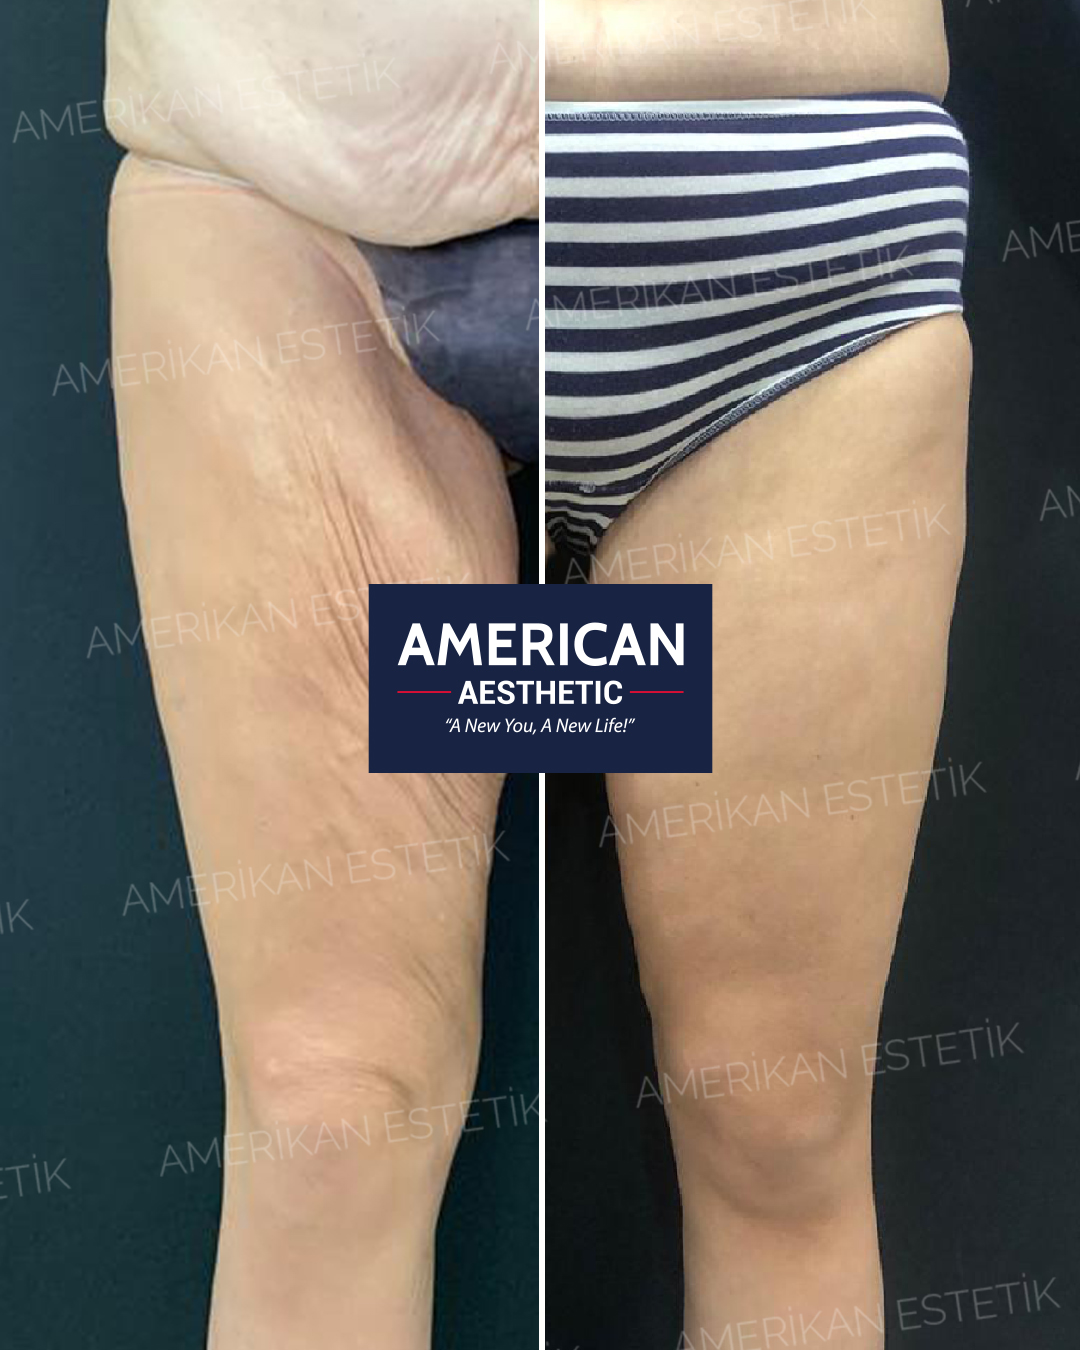 Hand, Arm and Leg Aesthetics Treatment